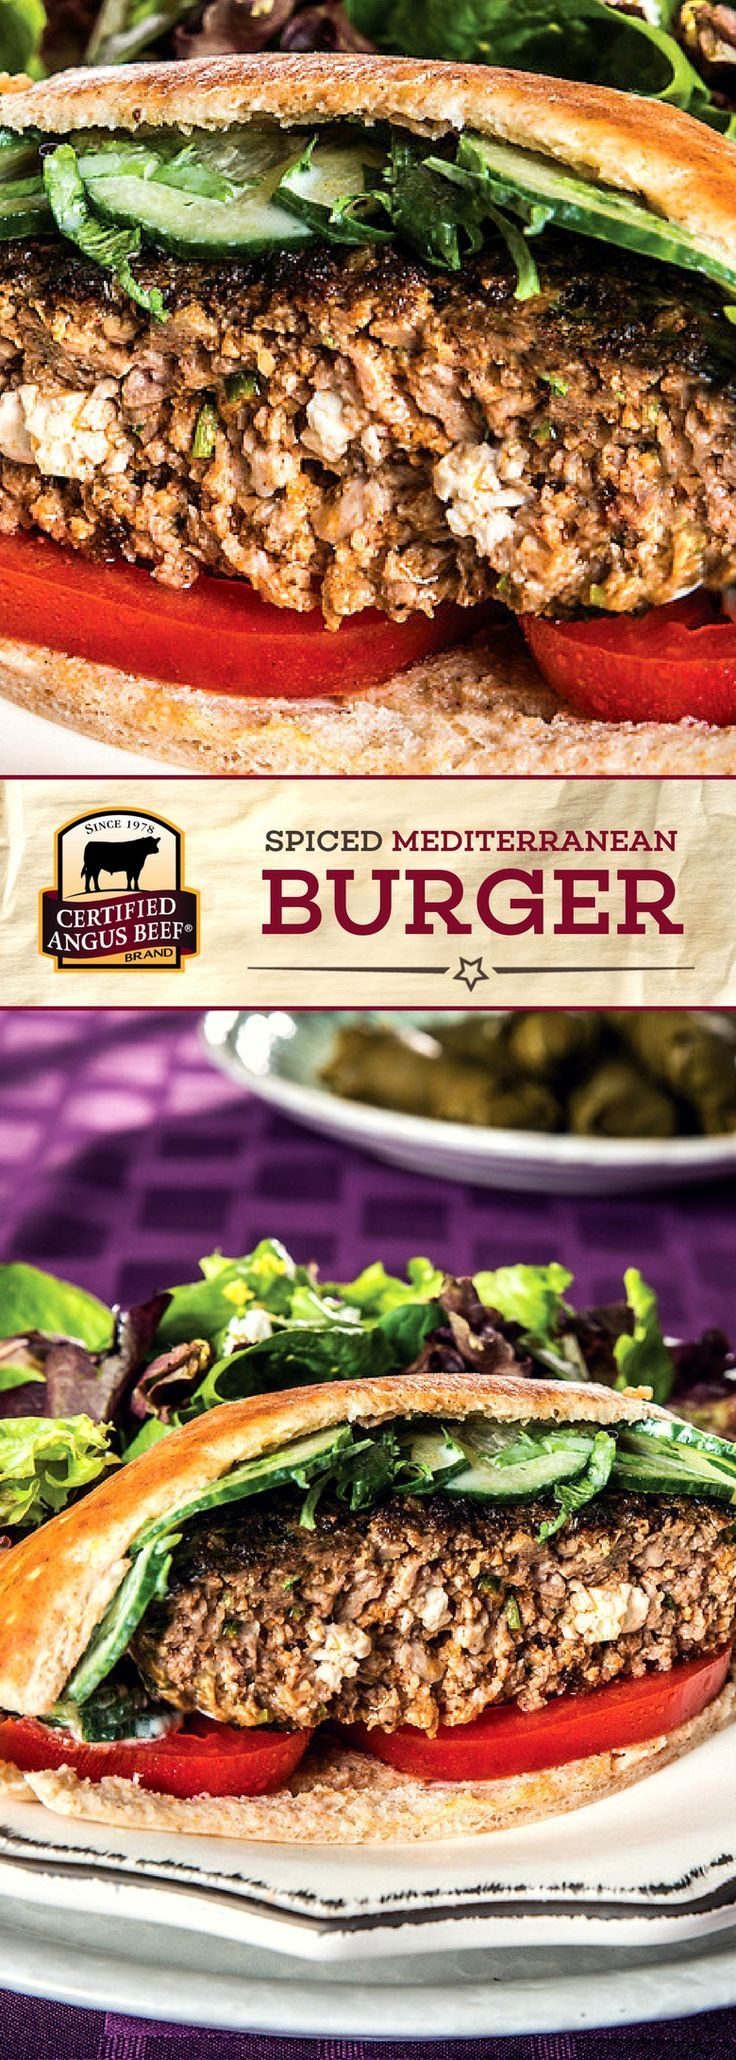 Certified Angus Beef®️️️ brand Spiced Mediterranean Burger is made with the BEST ground beef, mixed with a FLAVORFUL blend of spices, parsley, and crumbled Feta cheese. This EASY burger recipe is a MUST-TRY! #bestangusbeef #certifiedangusbeef #beefrecipe #burgerrecipe